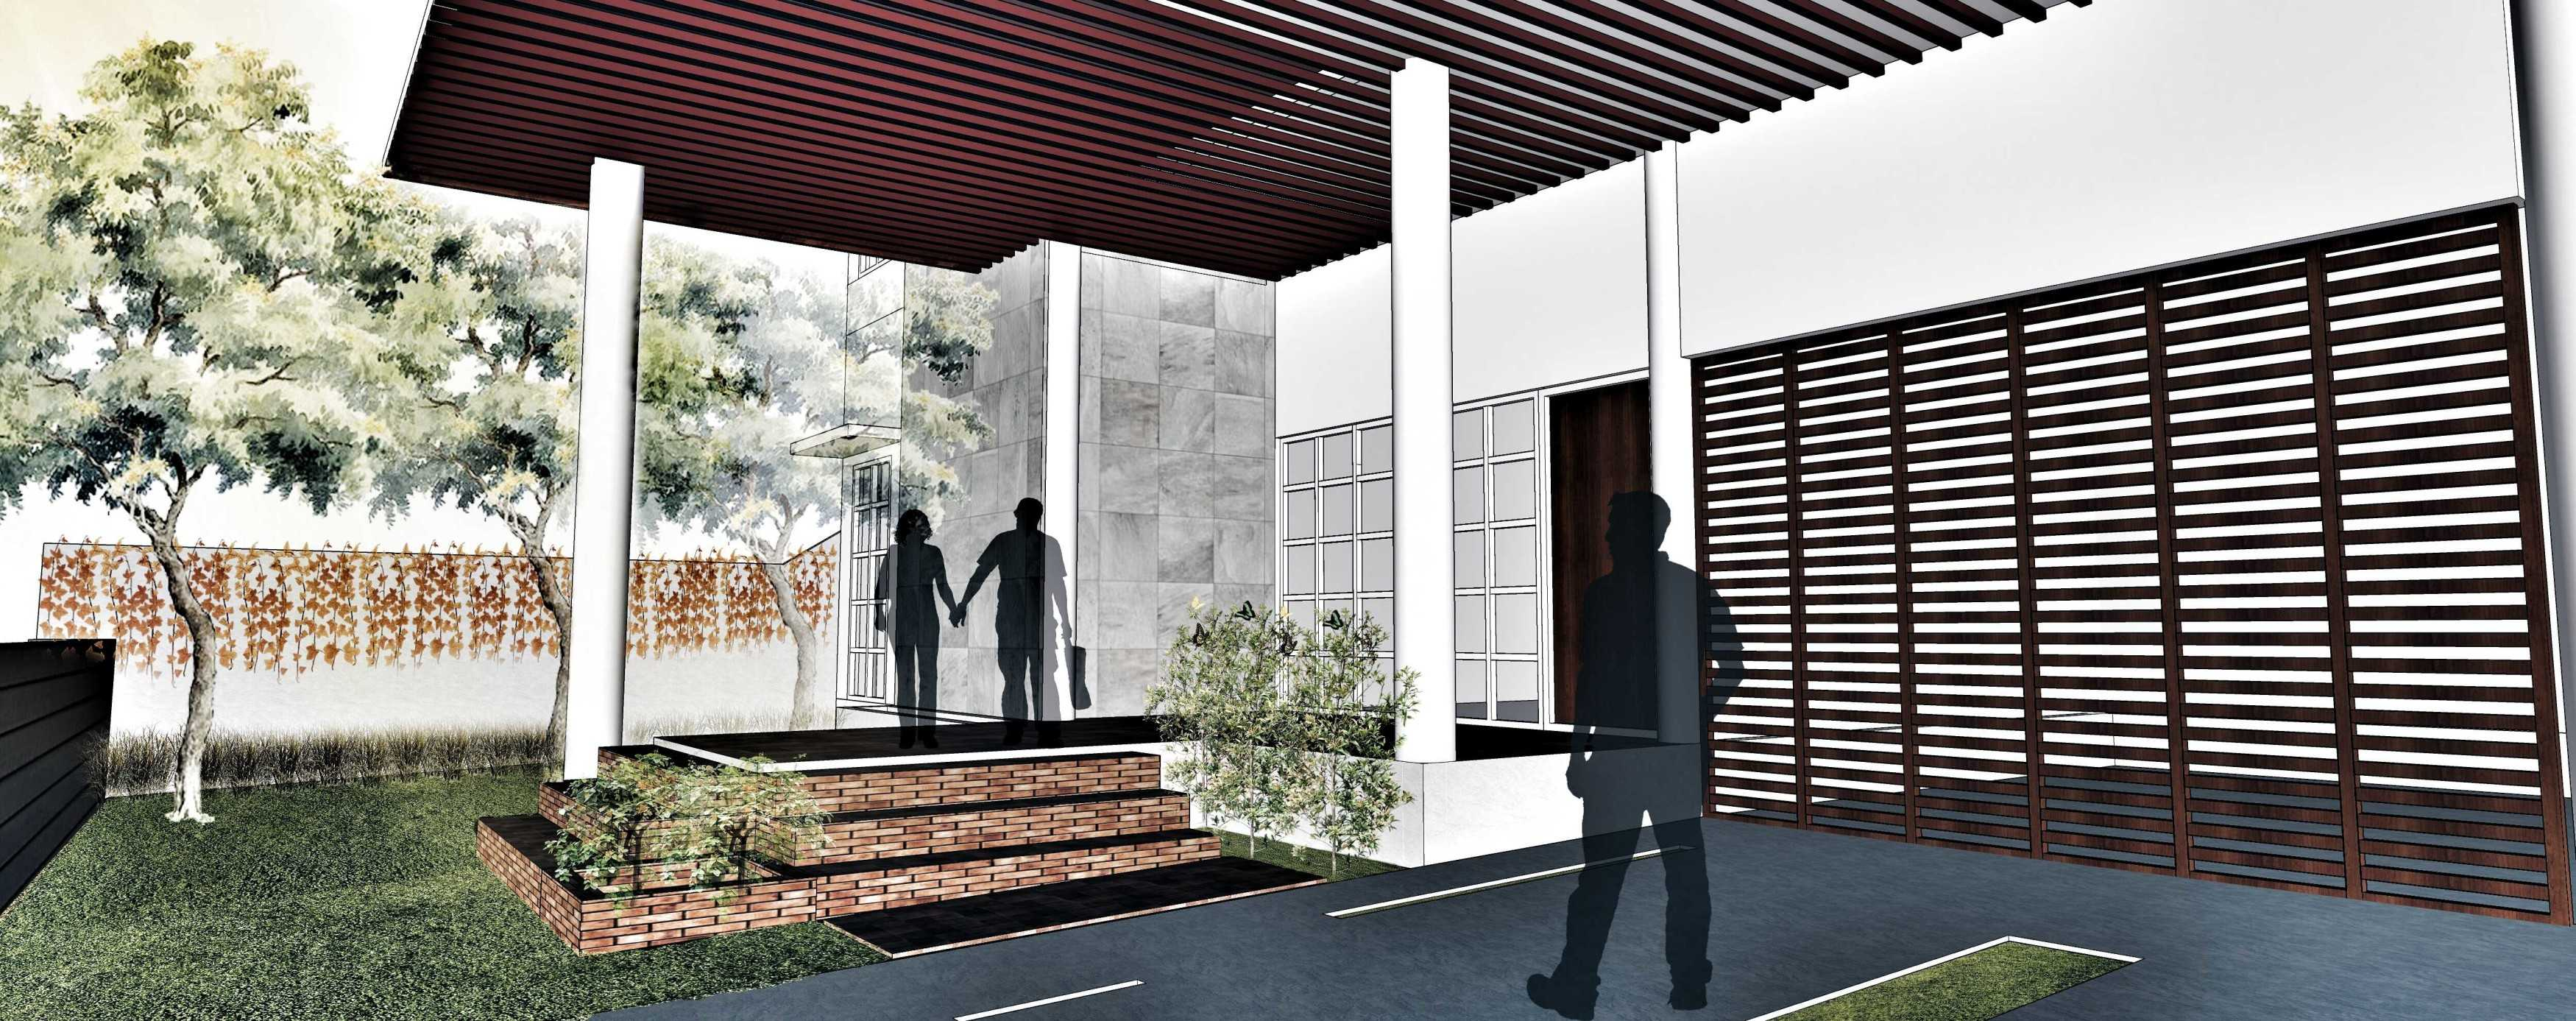 Future Architects Studio Mr. A House In Pontianak Pontianak, Indonesia Pontianak, Indonesia 2017-03-27-04   29310